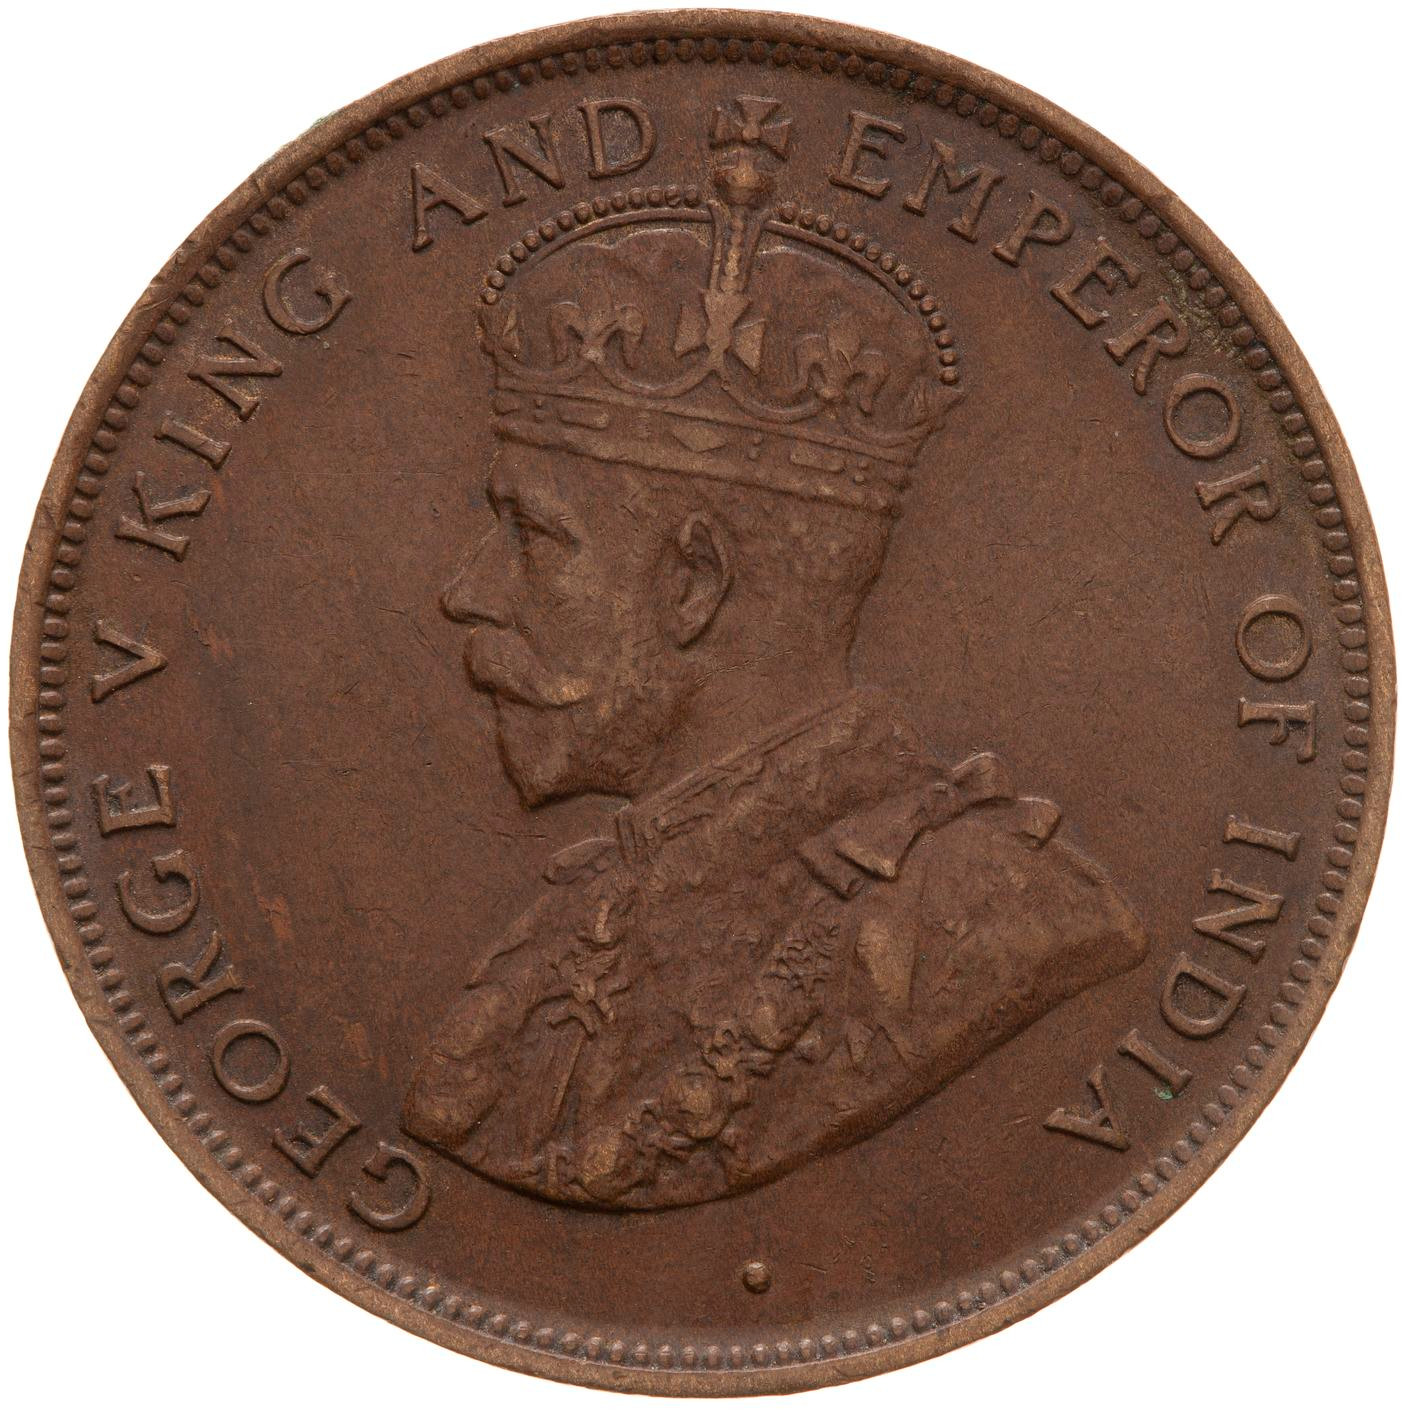 One Cent: Photo Coin - 1 Cent, British Honduras (Belize), 1911